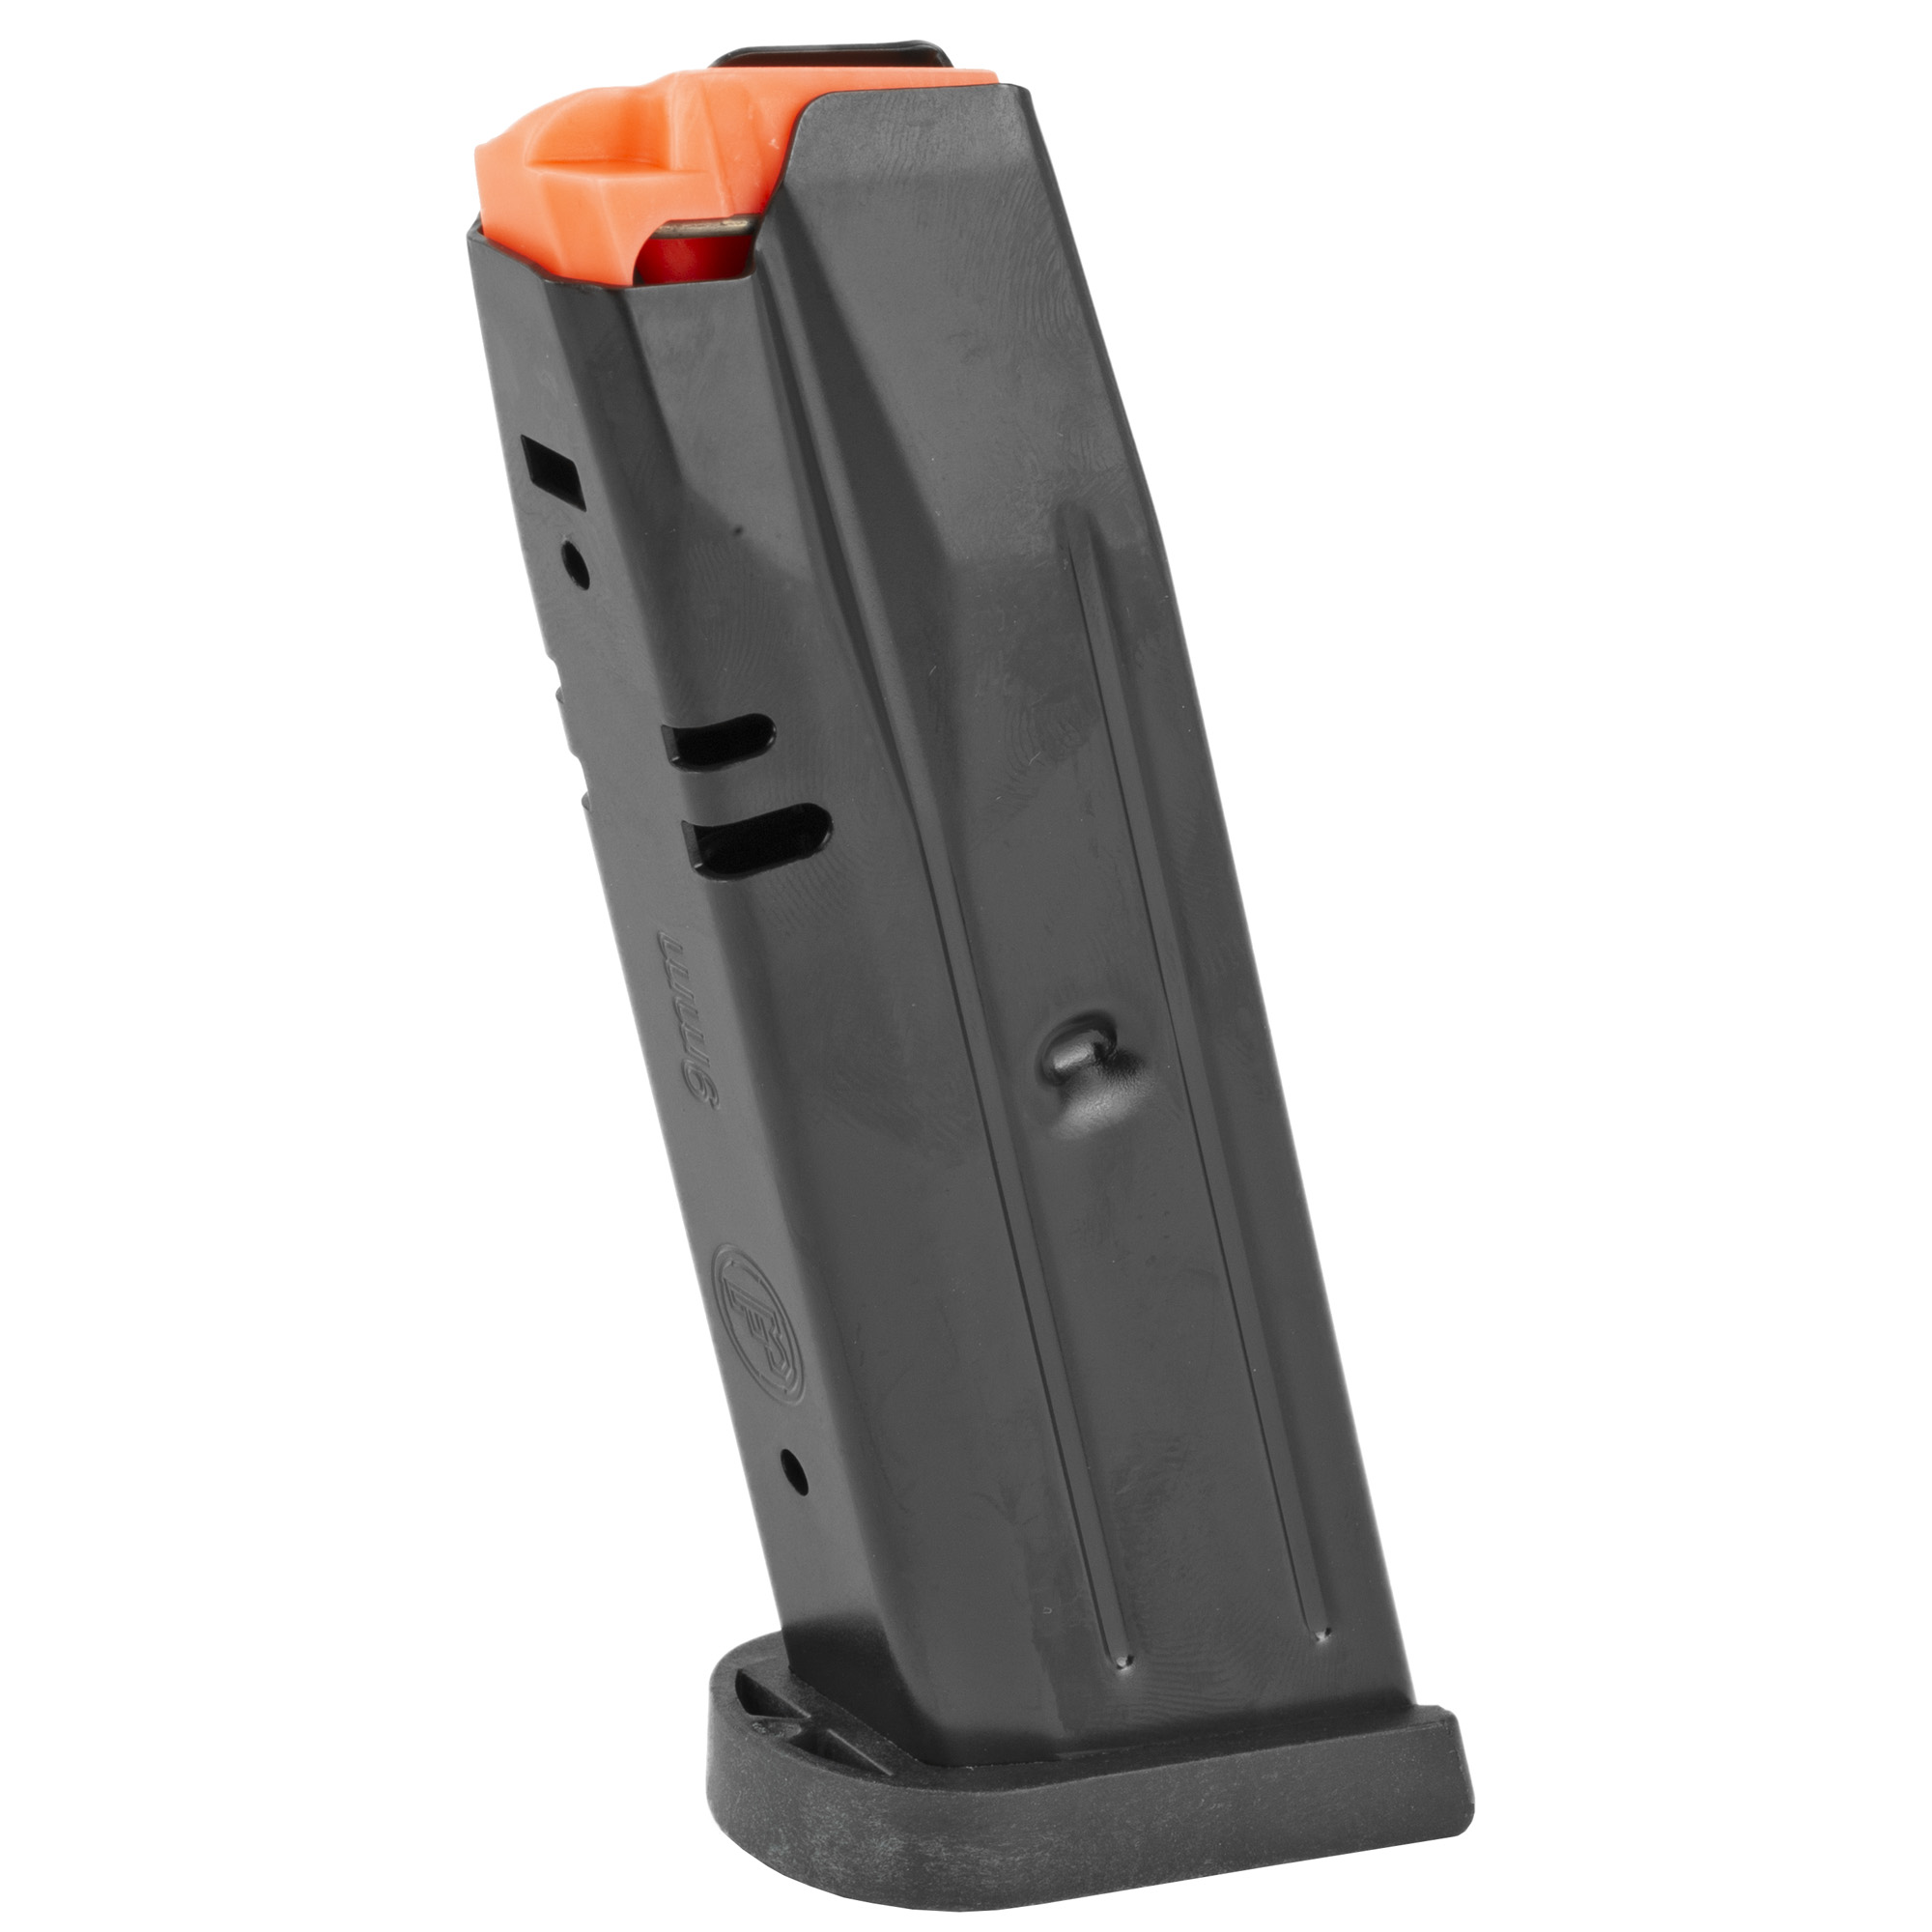 This CZ factory OEM magazine features durable steel construction that will ensure a lifetime of flawless function and reliability.